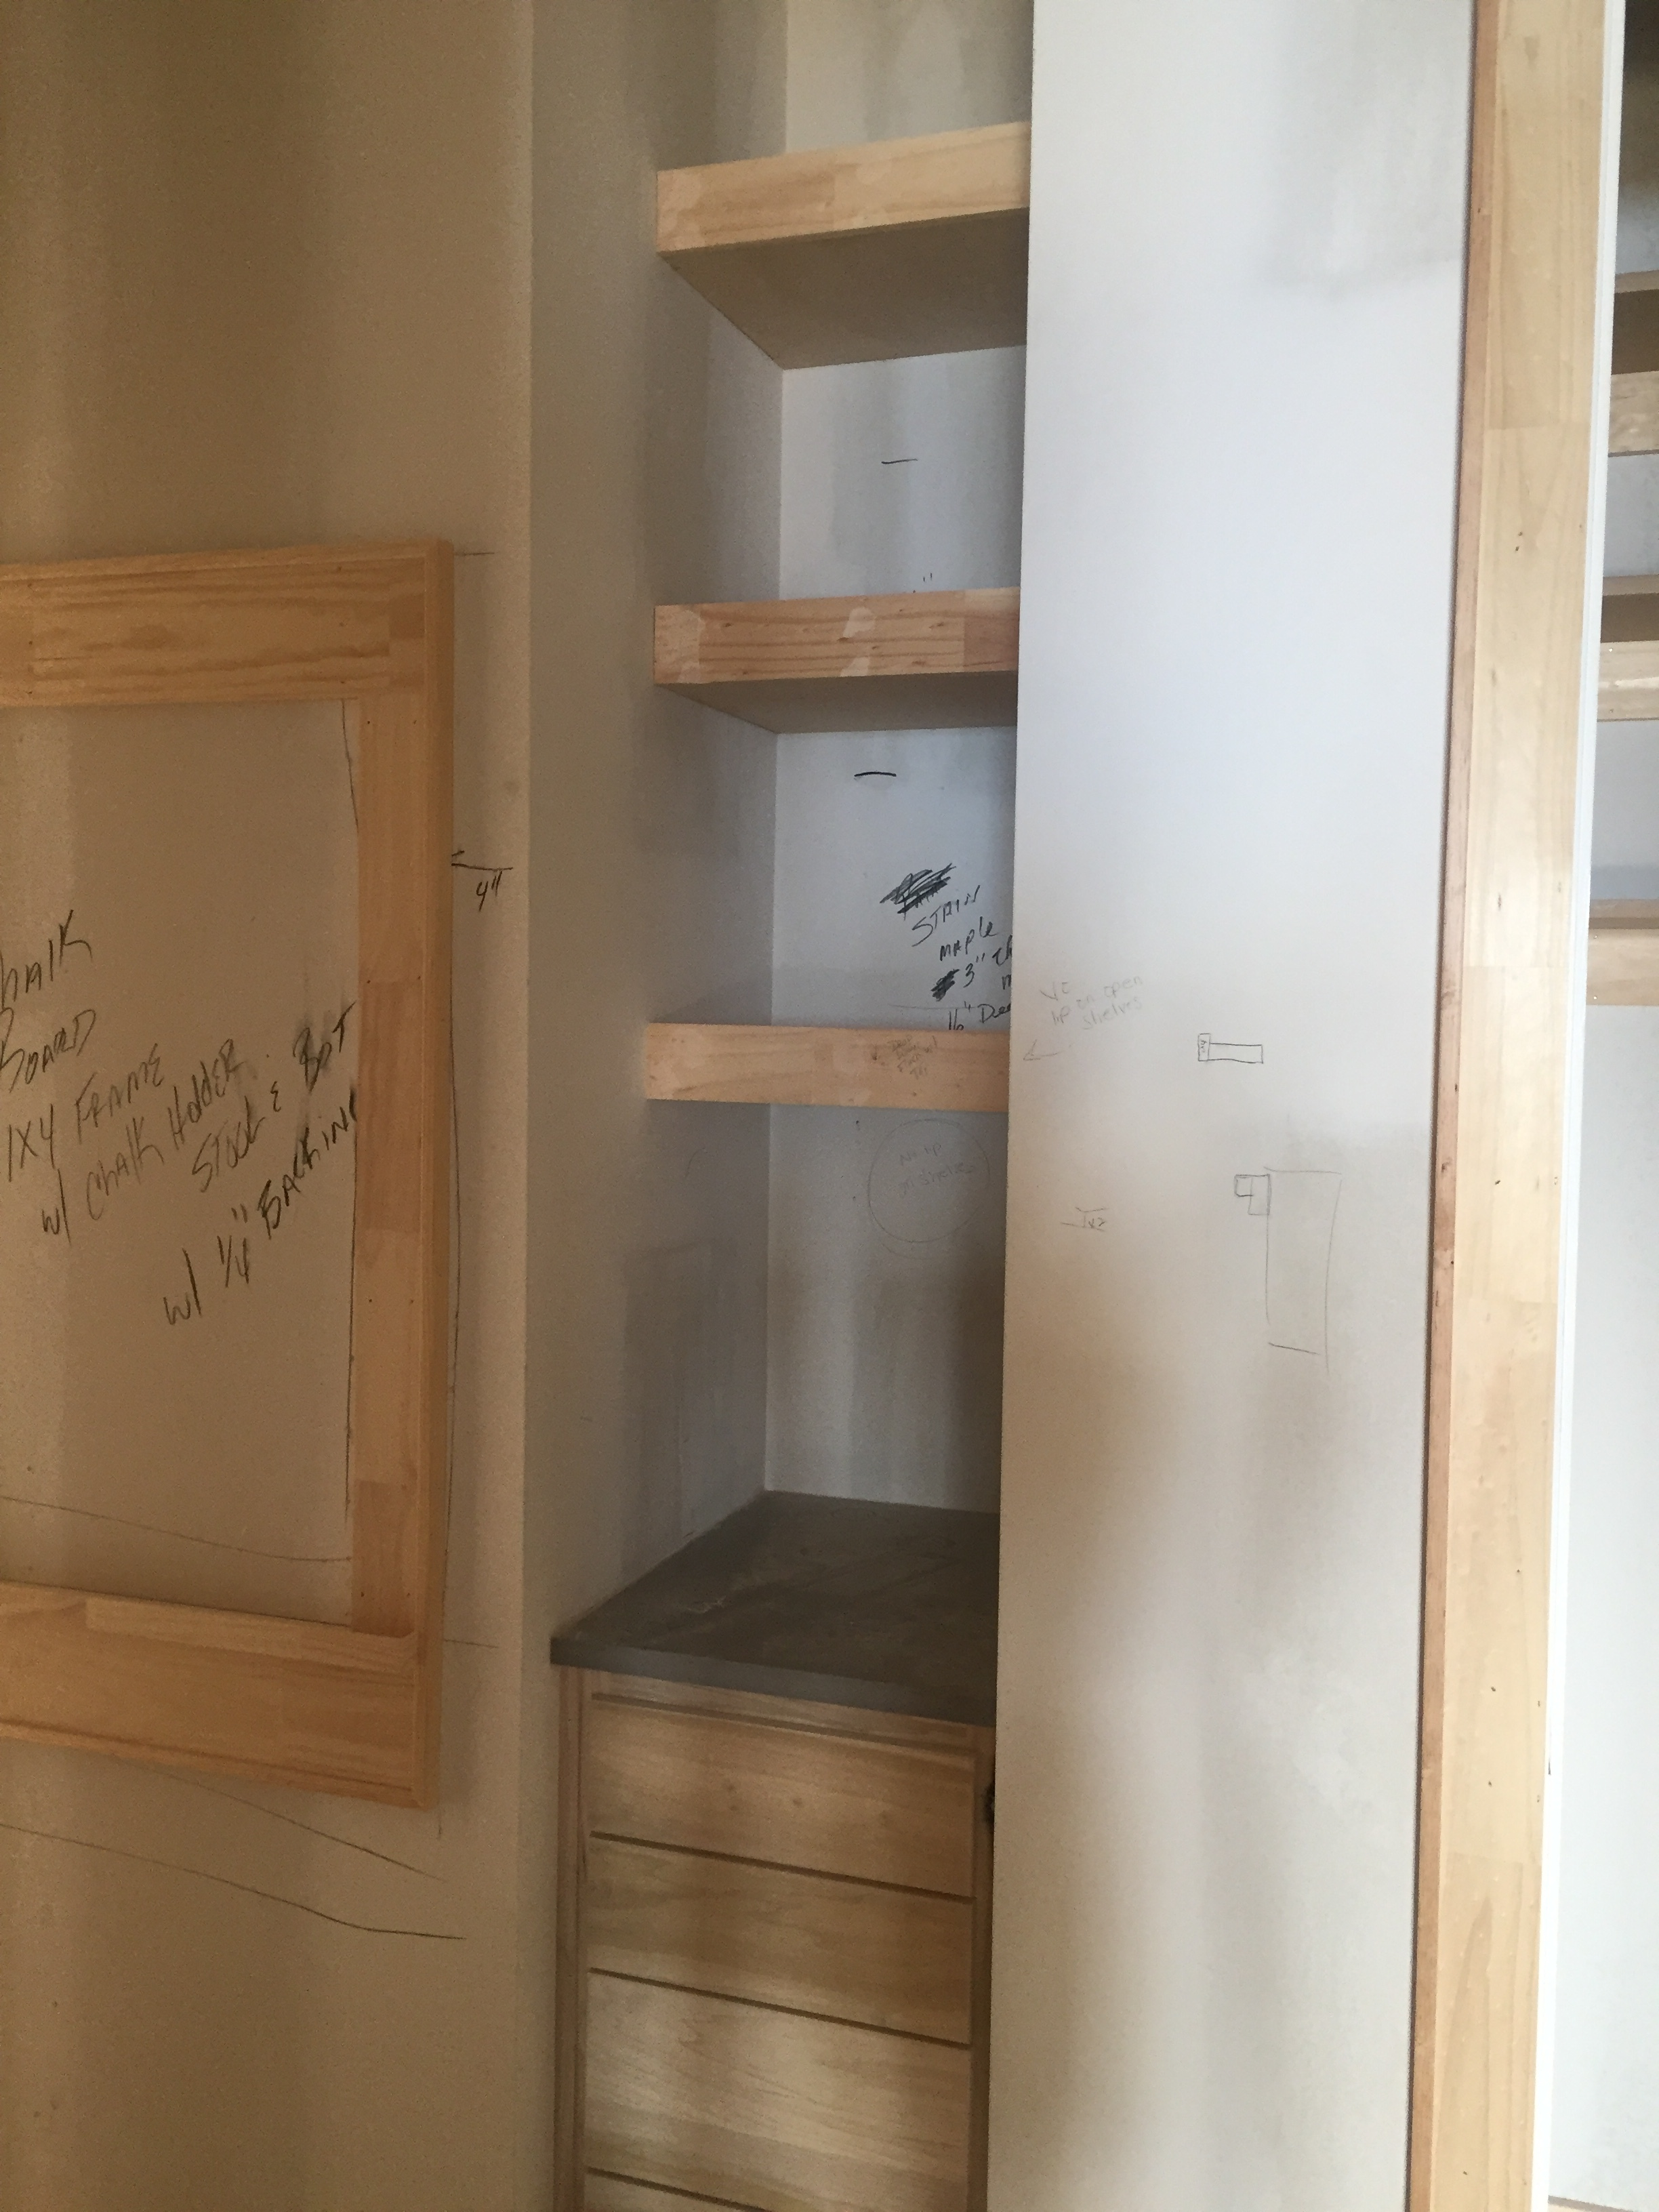 And there are the open shelves and the chalk board. They even built a little chalk tray, our trim guys attention to detail is amazing!